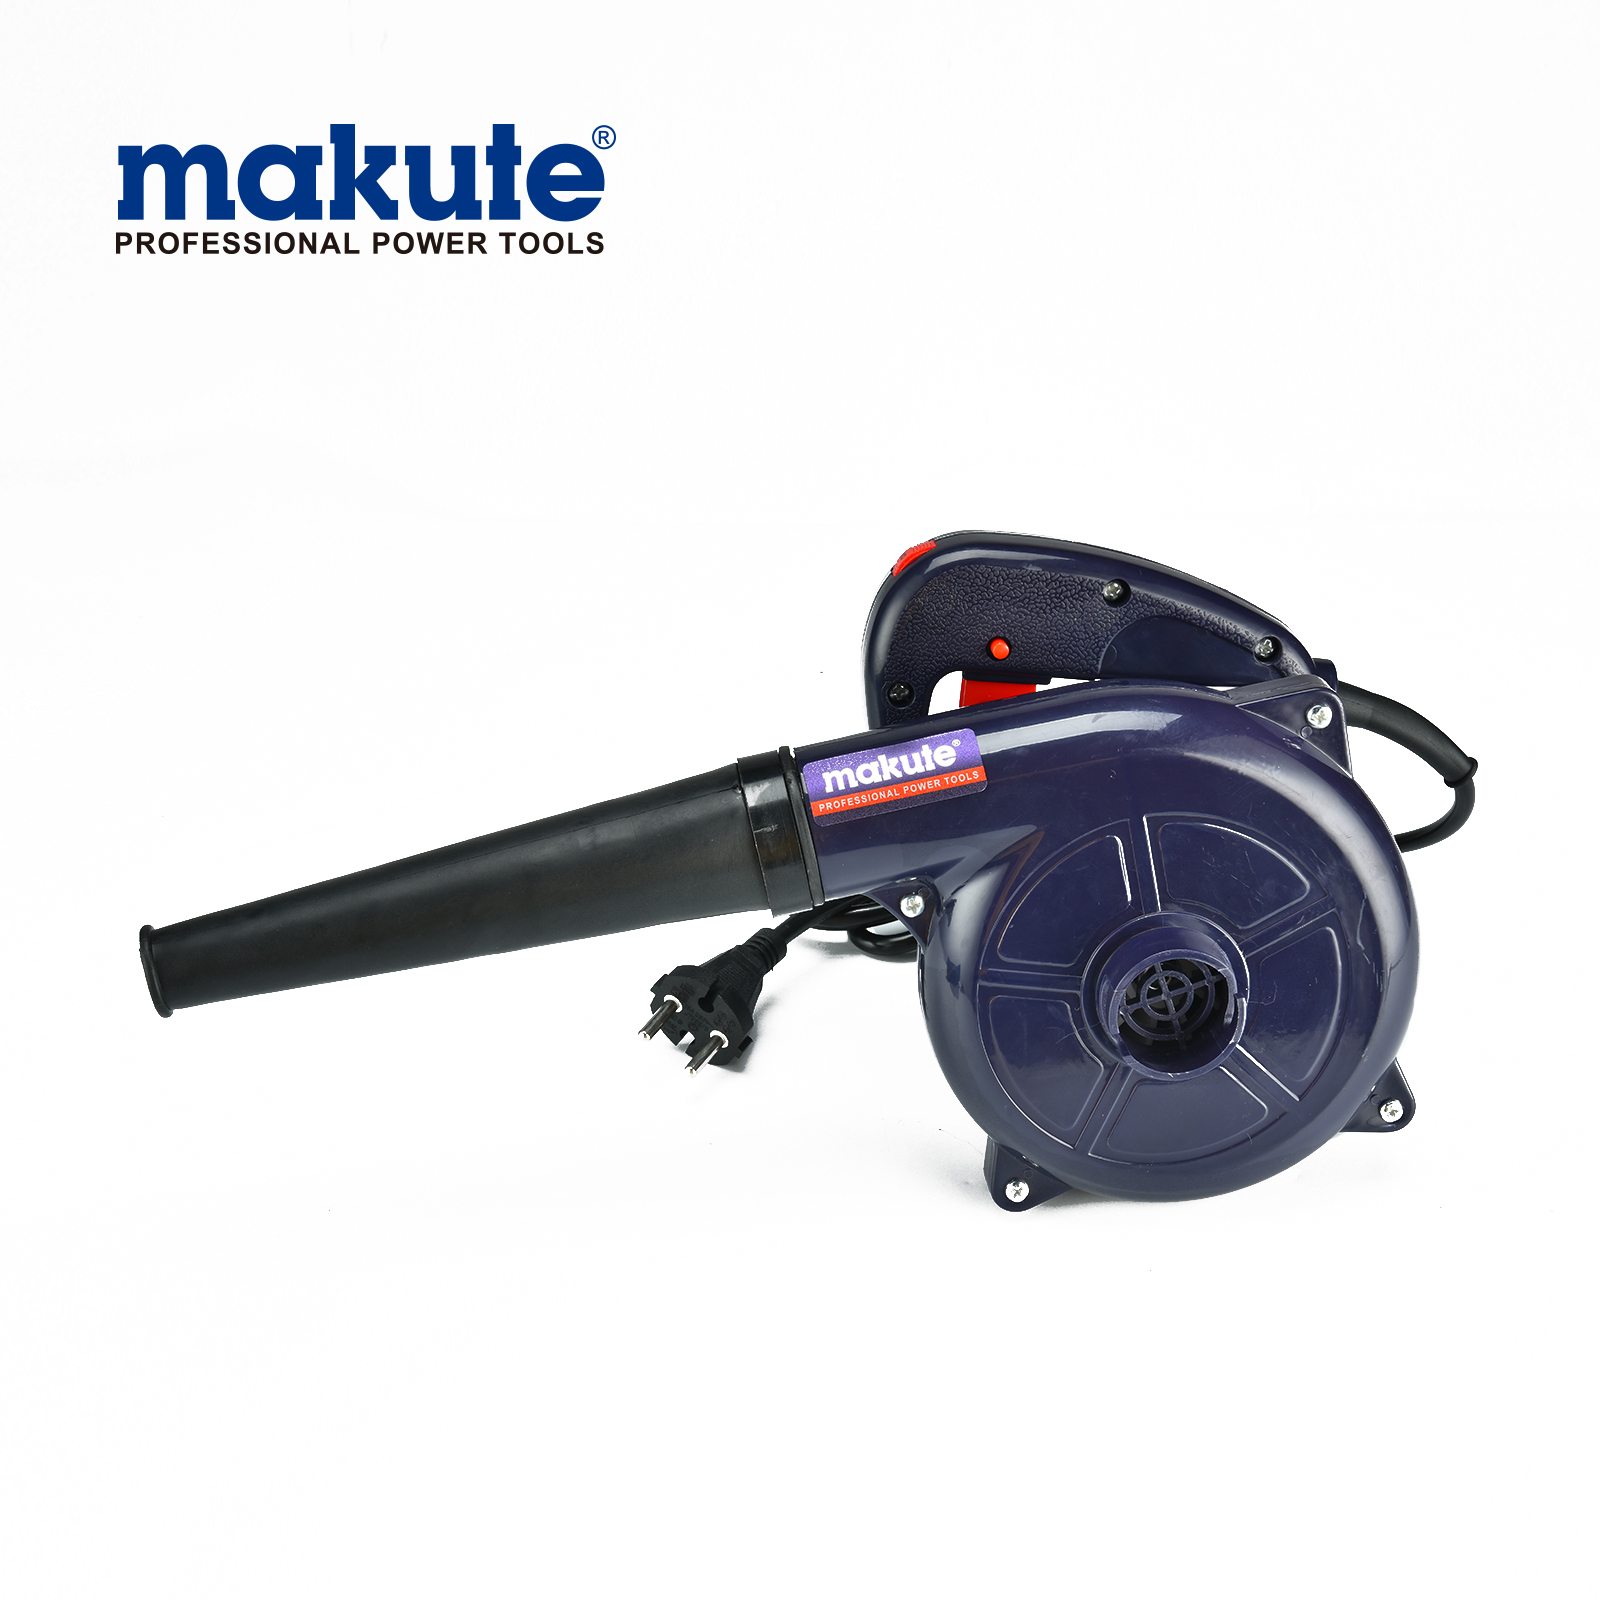 lightweight industrial handheld protable air blower